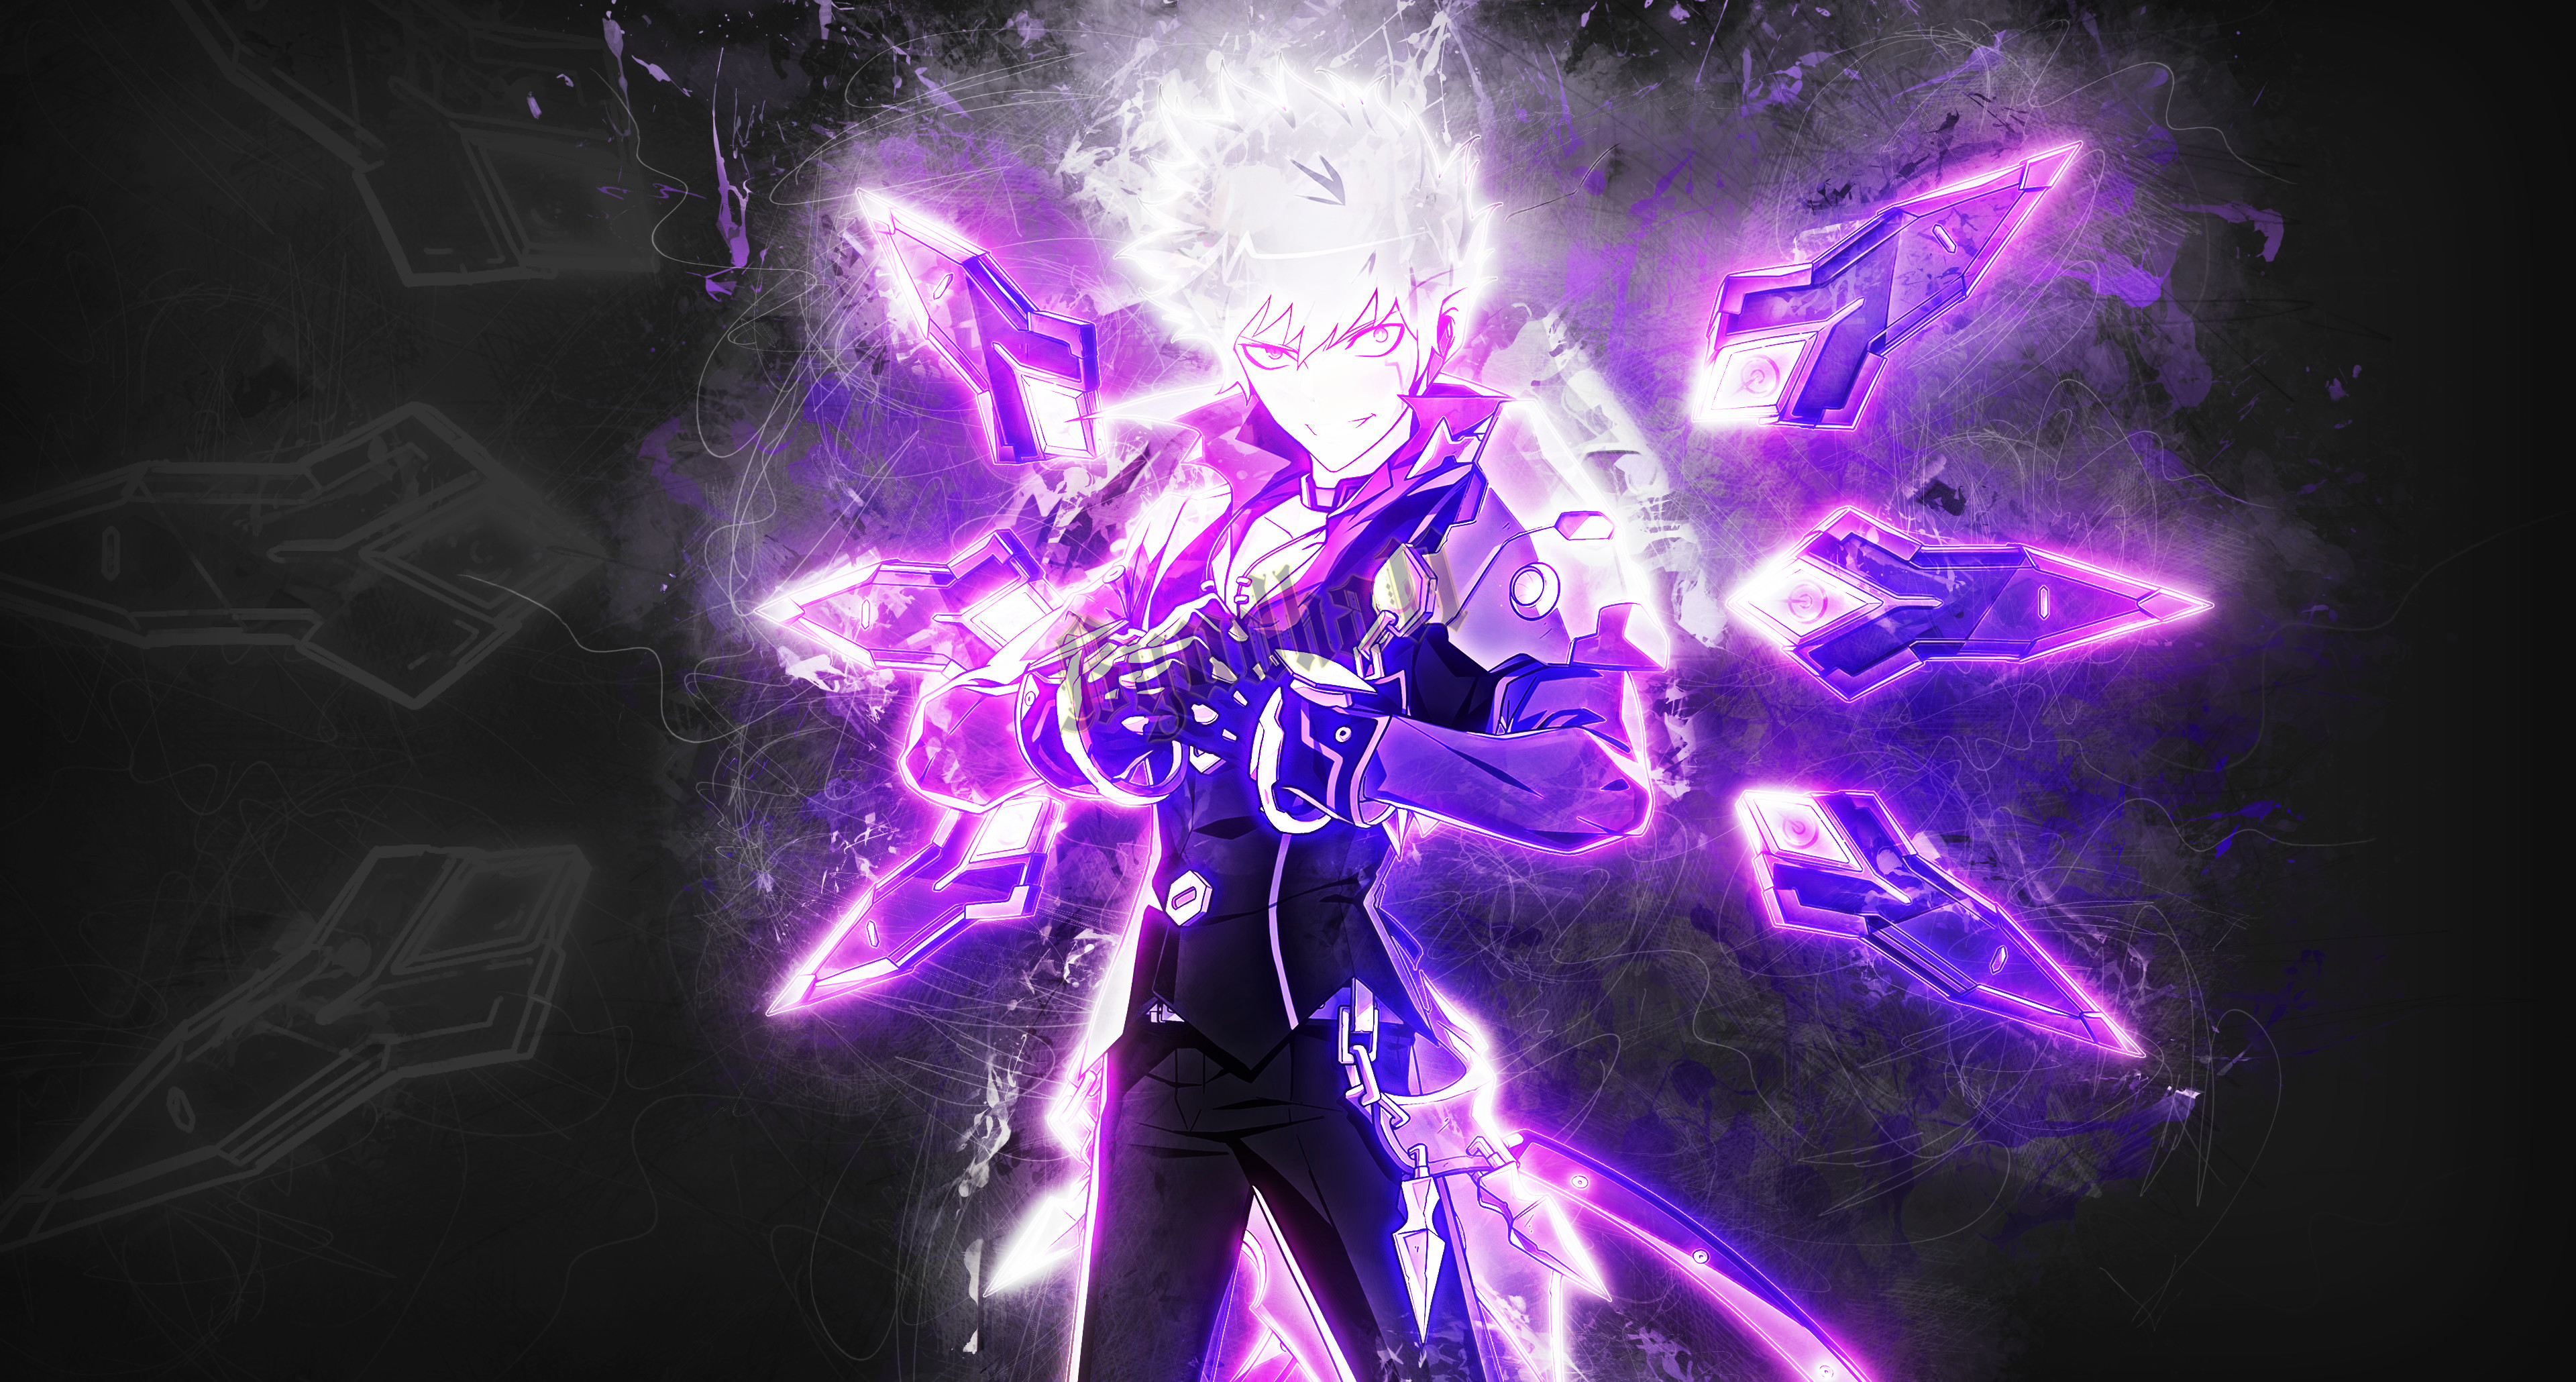 3840x2060 ... Add - Lunatic Psyker (Elsword) by Byudha11